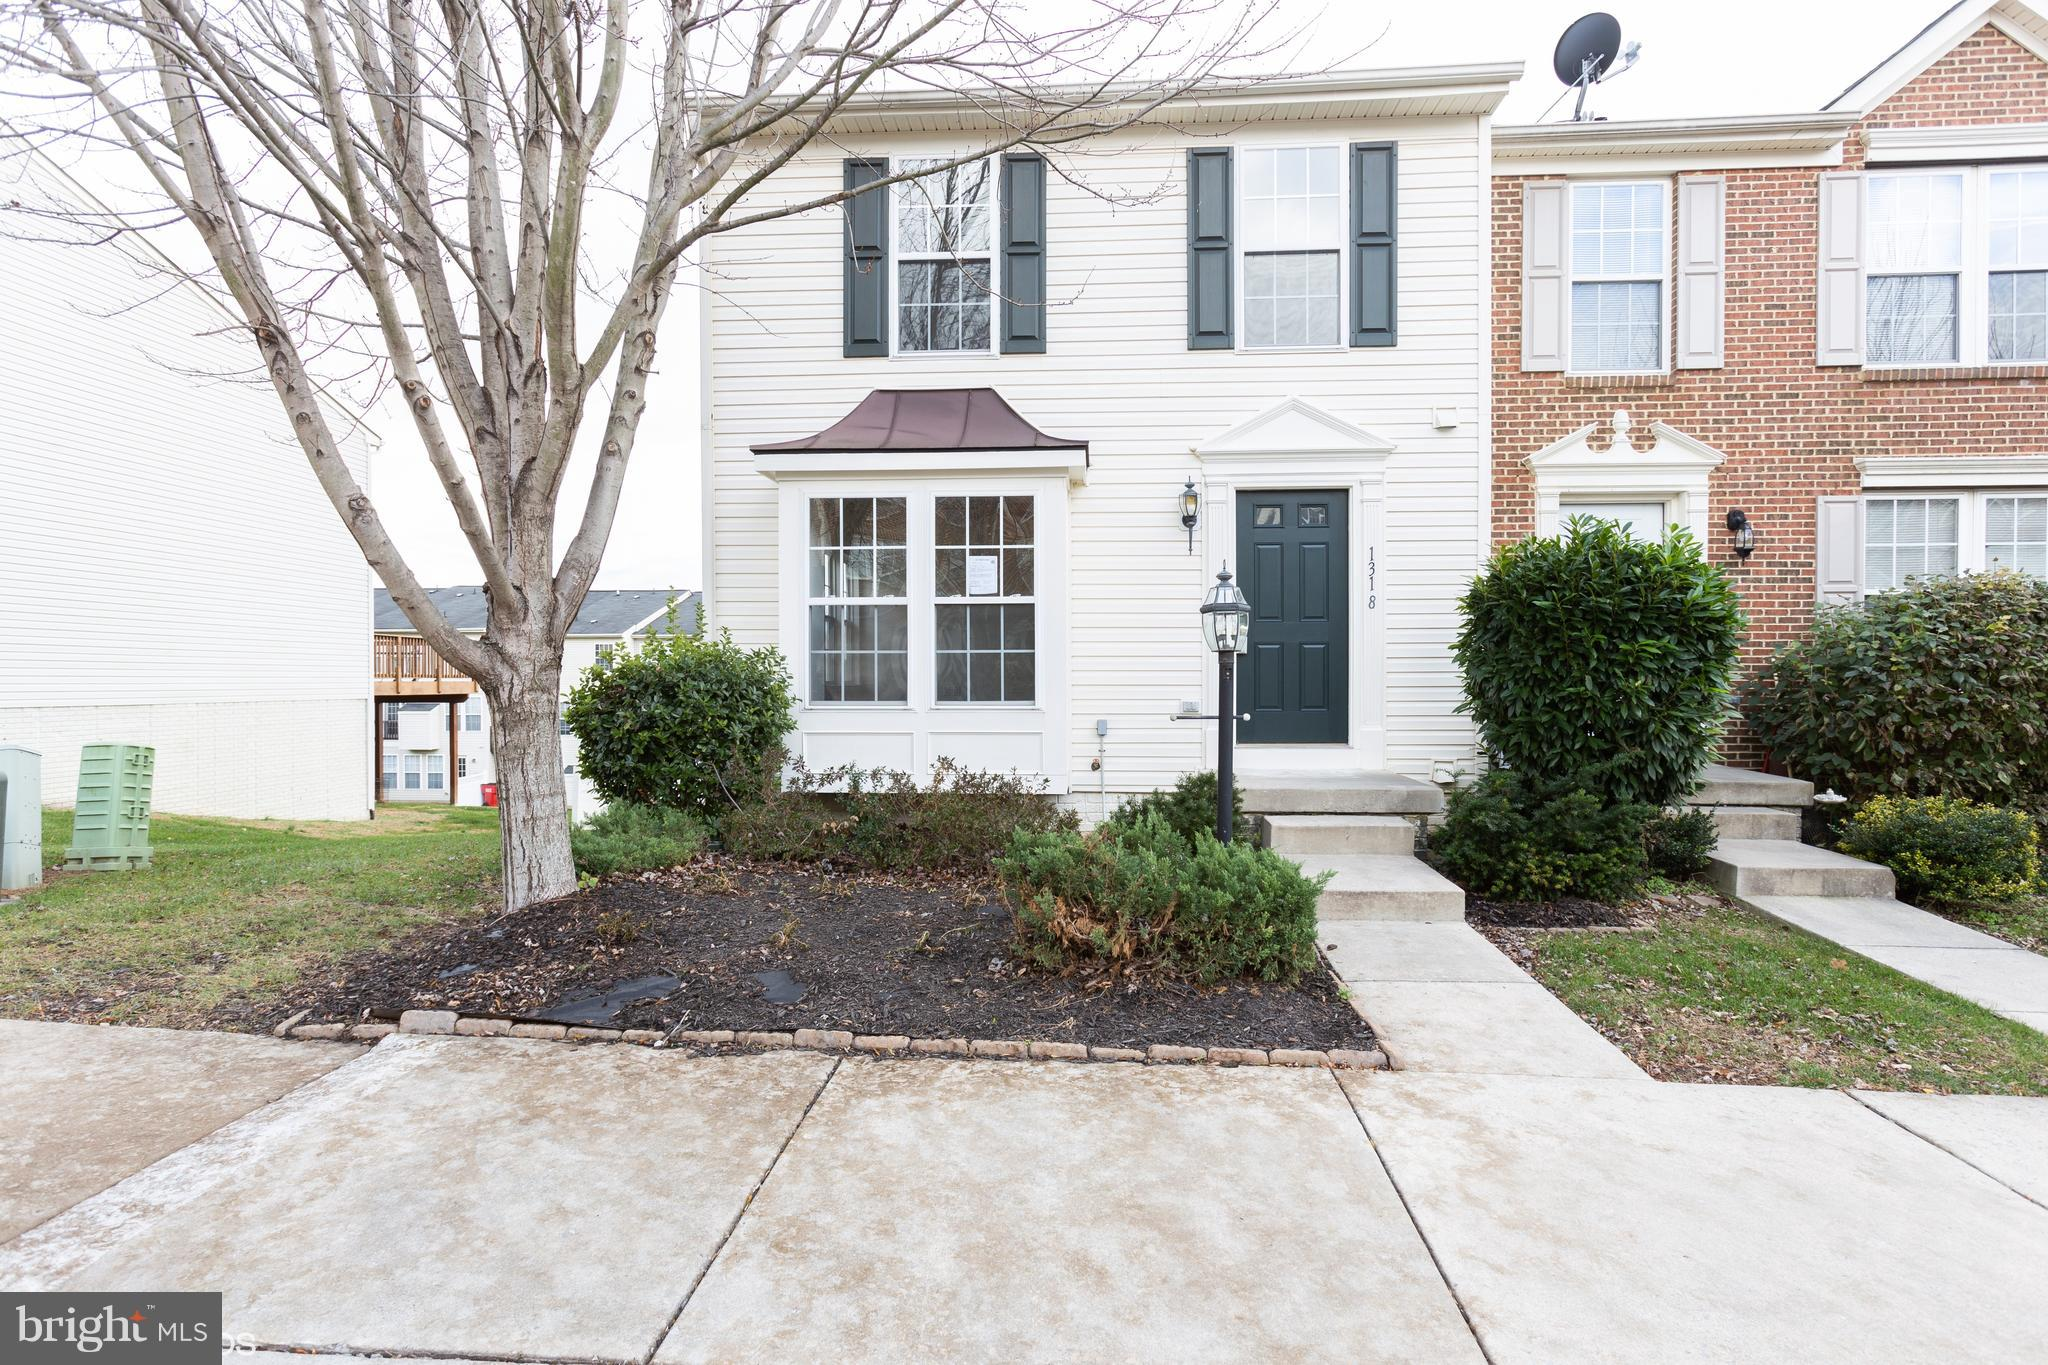 End unit, two story townhouse located in Fairfax Crossing is close to shopping and entertainment. Home features 3 BRs, 2.5 BAs with full/ finished basement and rear deck off kitchen.  Fresh paint, new floor coverings to name a few updates, come check this beauty out.